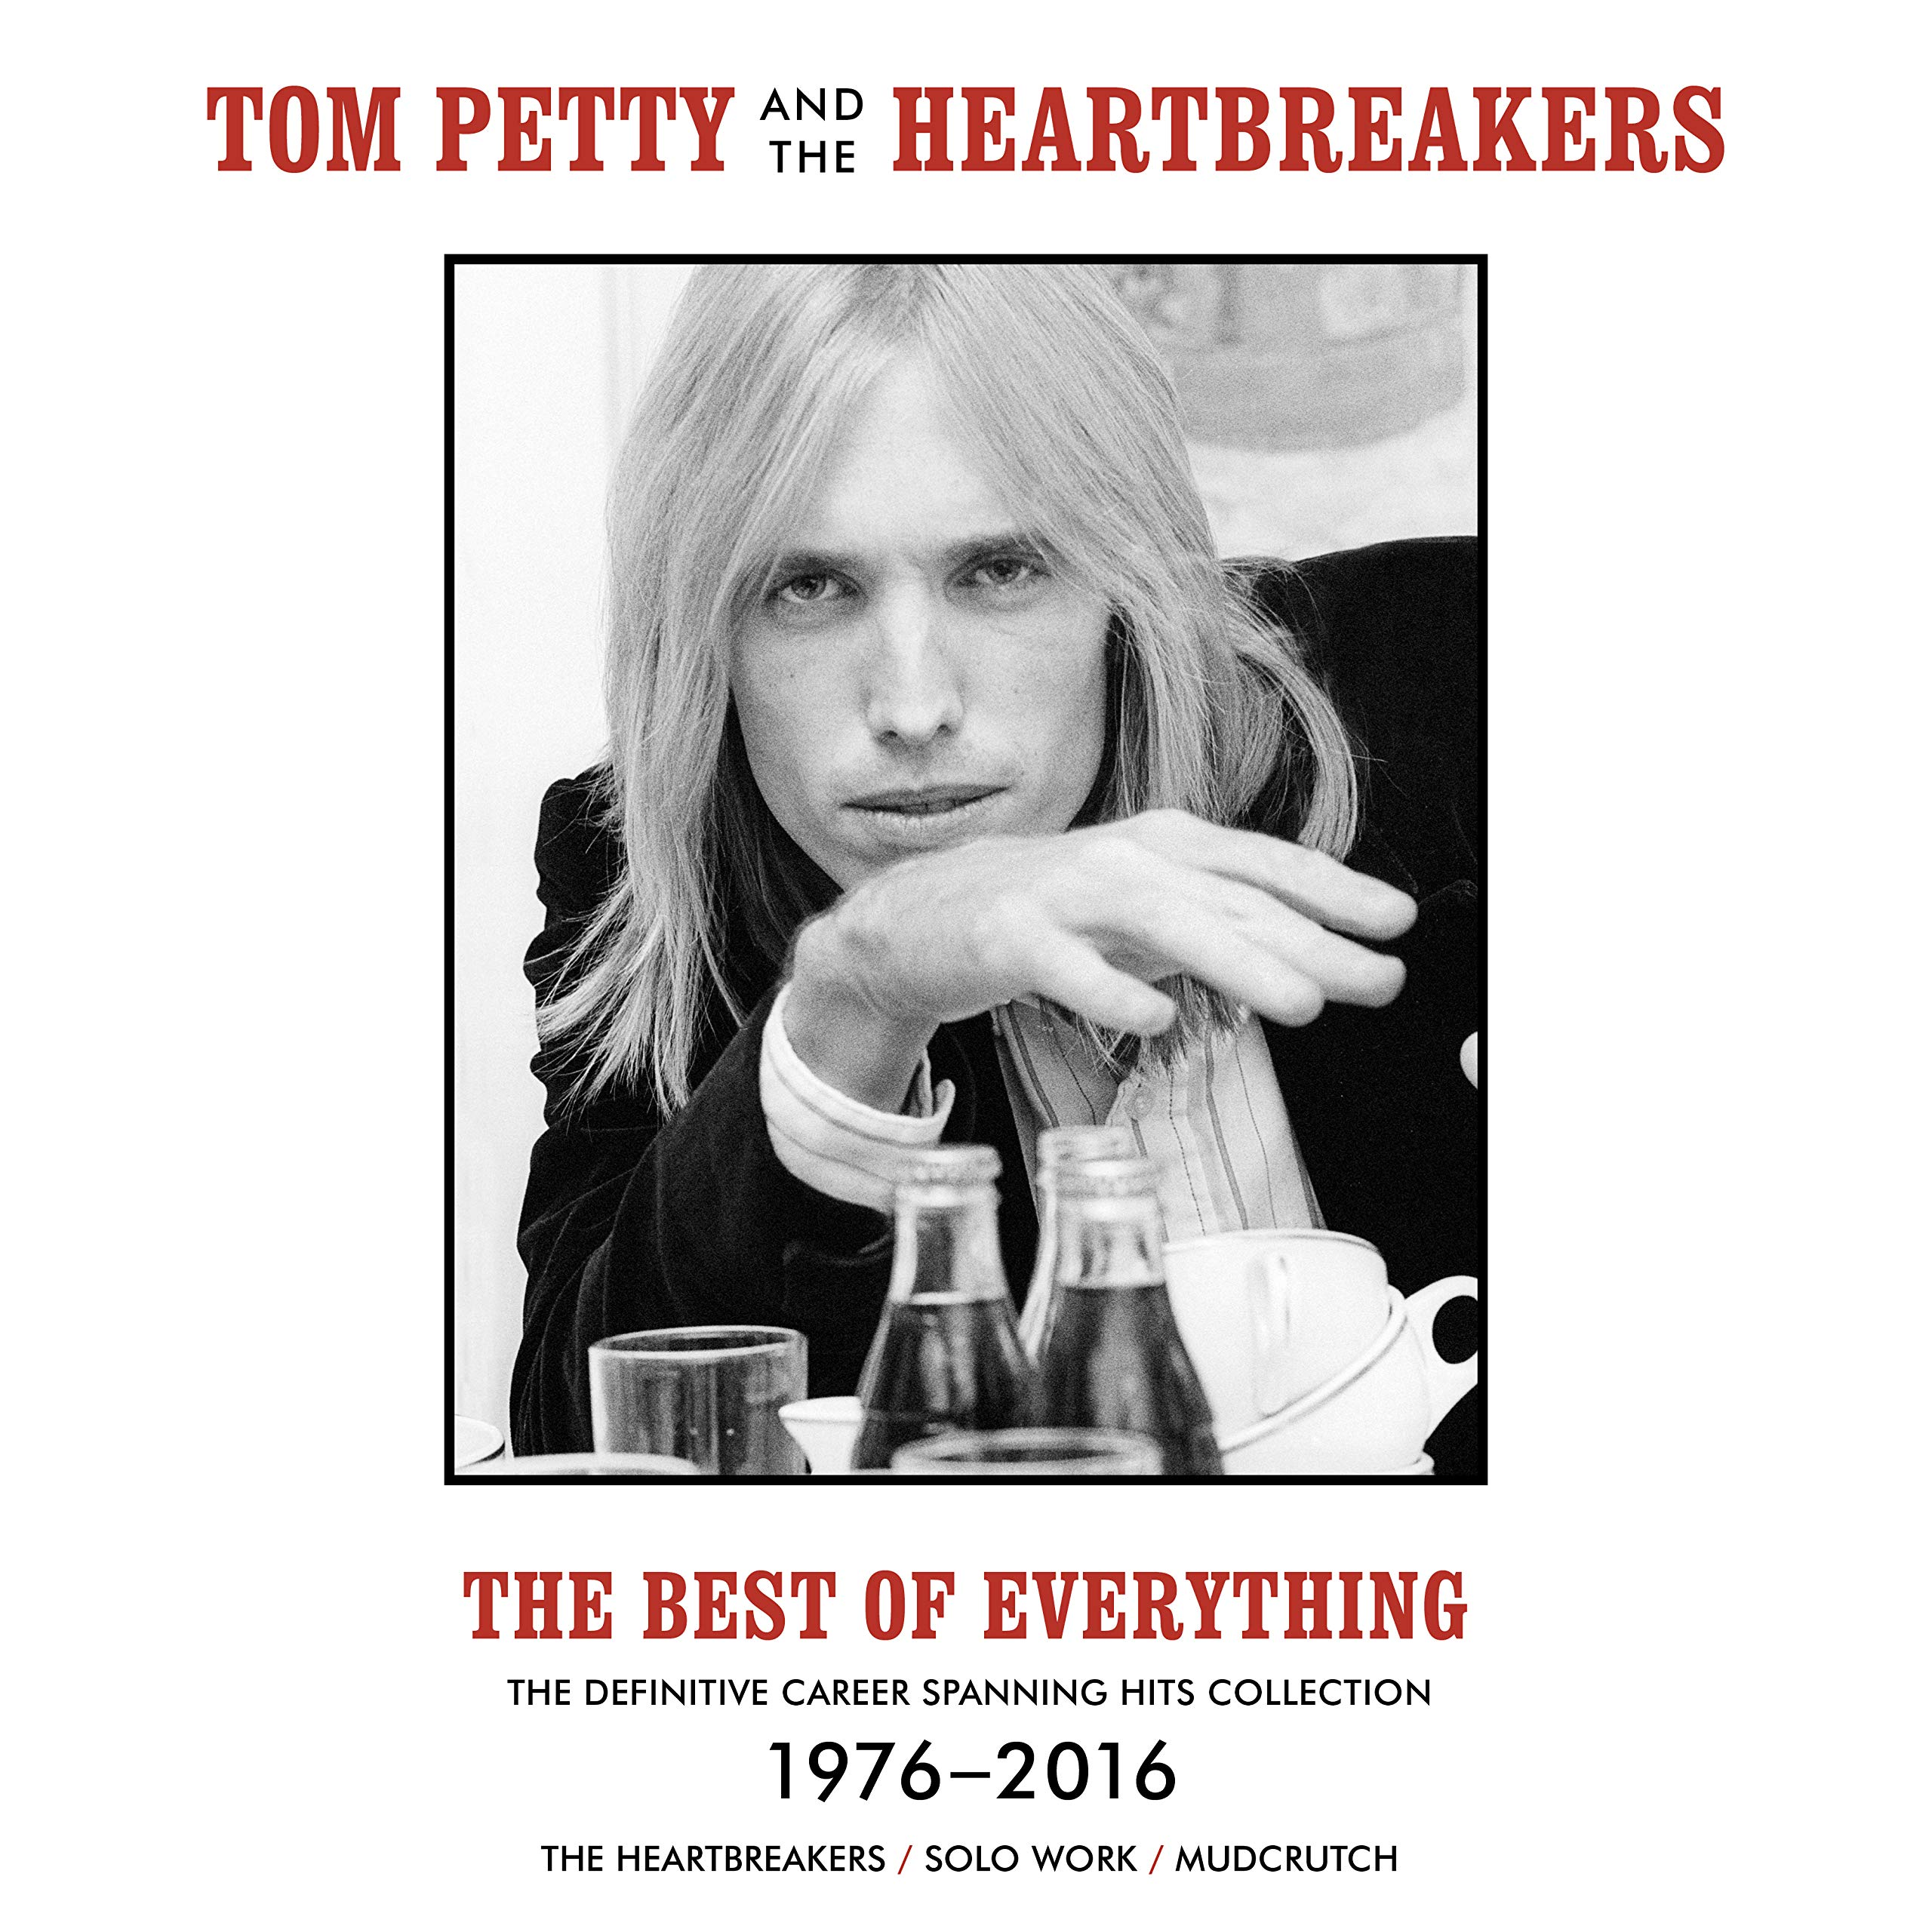 CD : Tom Petty - The Best Of Everything - The Definitive Career Spanning Hits Collection